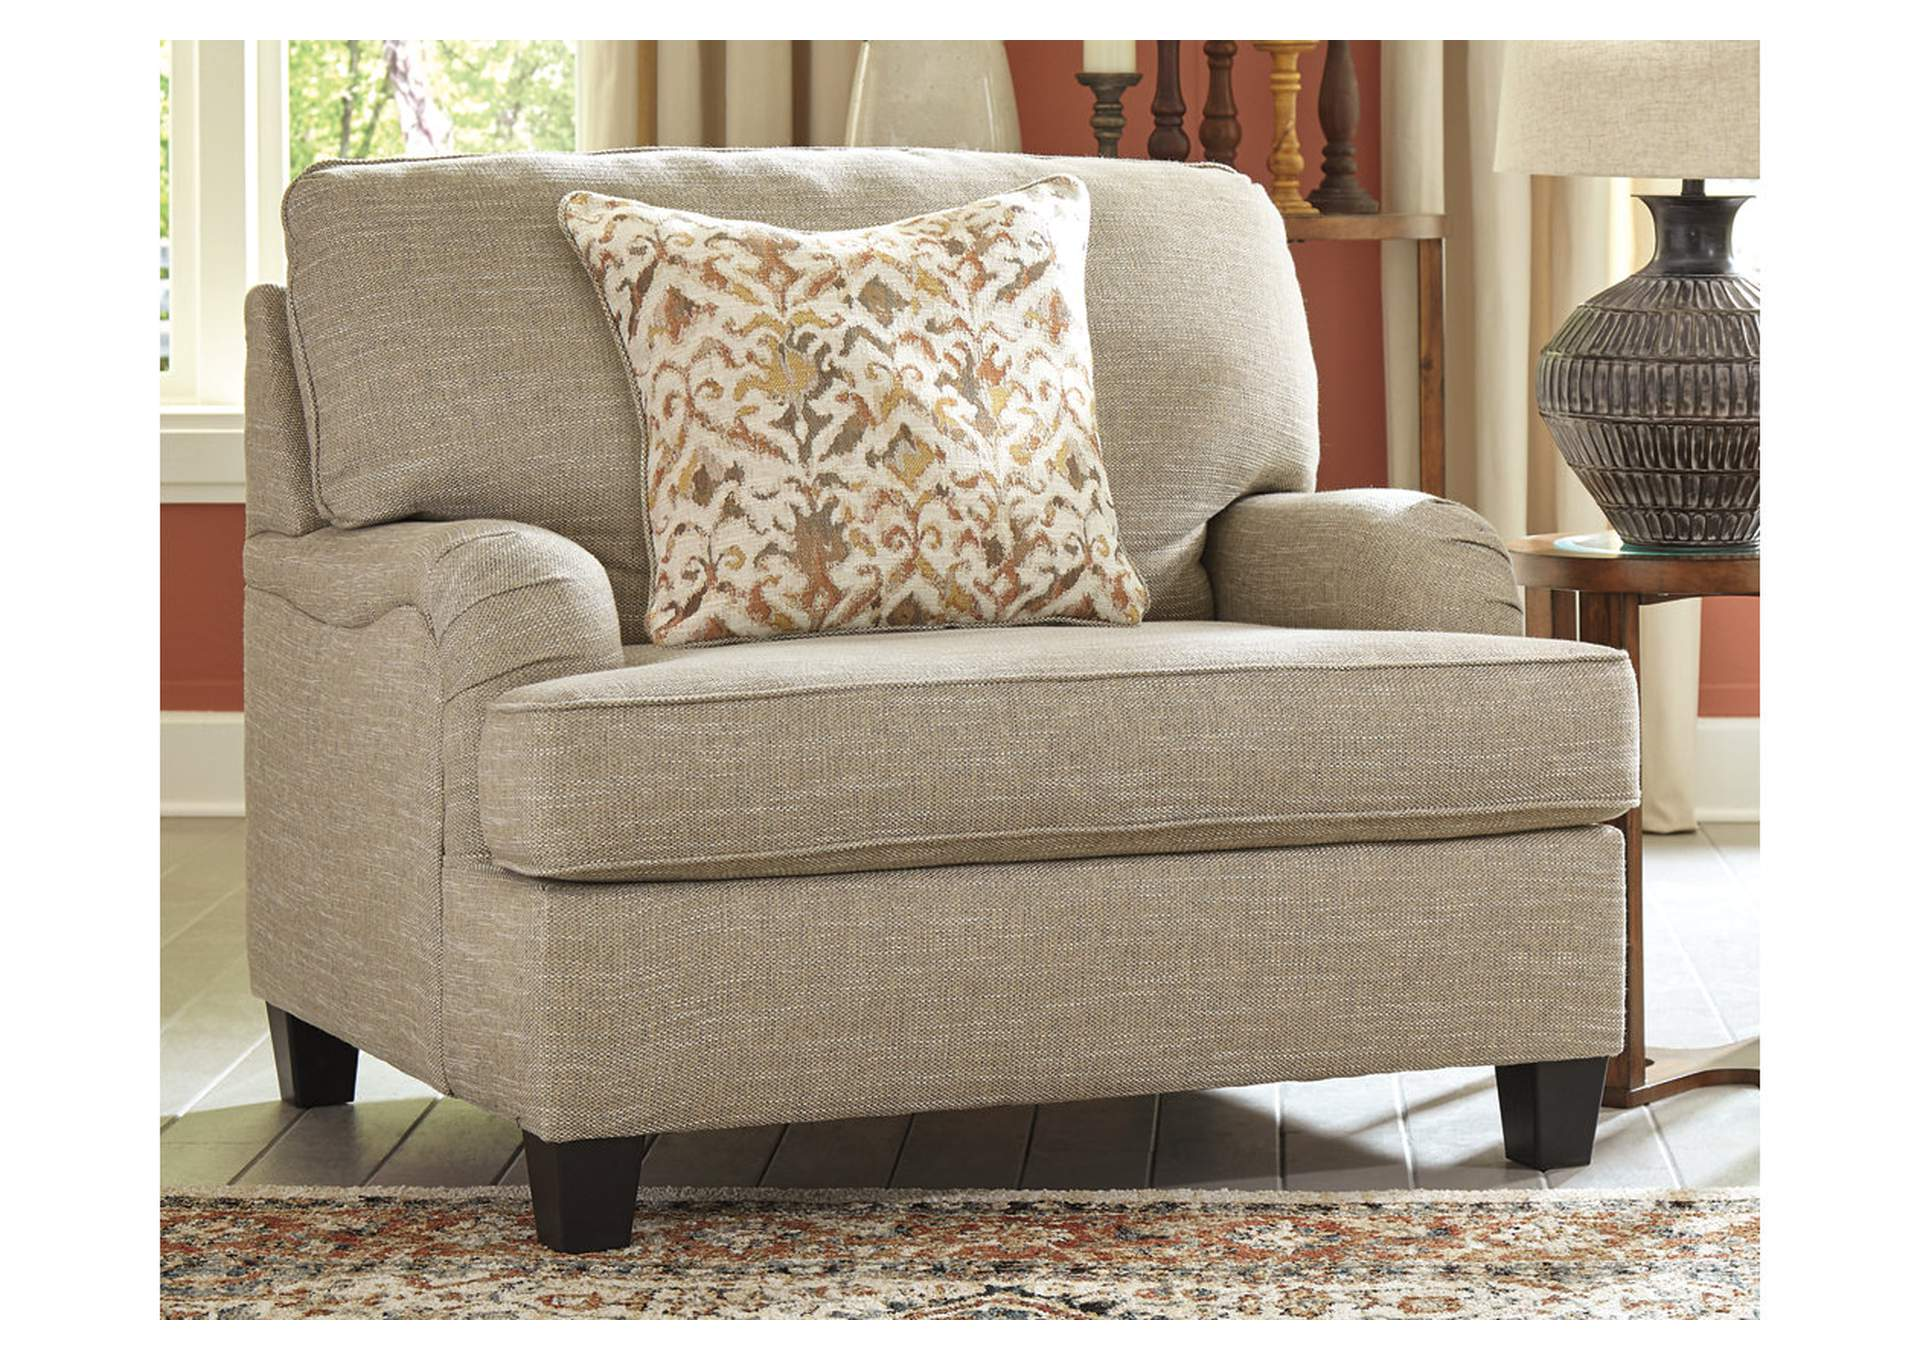 Almanza Wheat Oversized Chair,Signature Design By Ashley